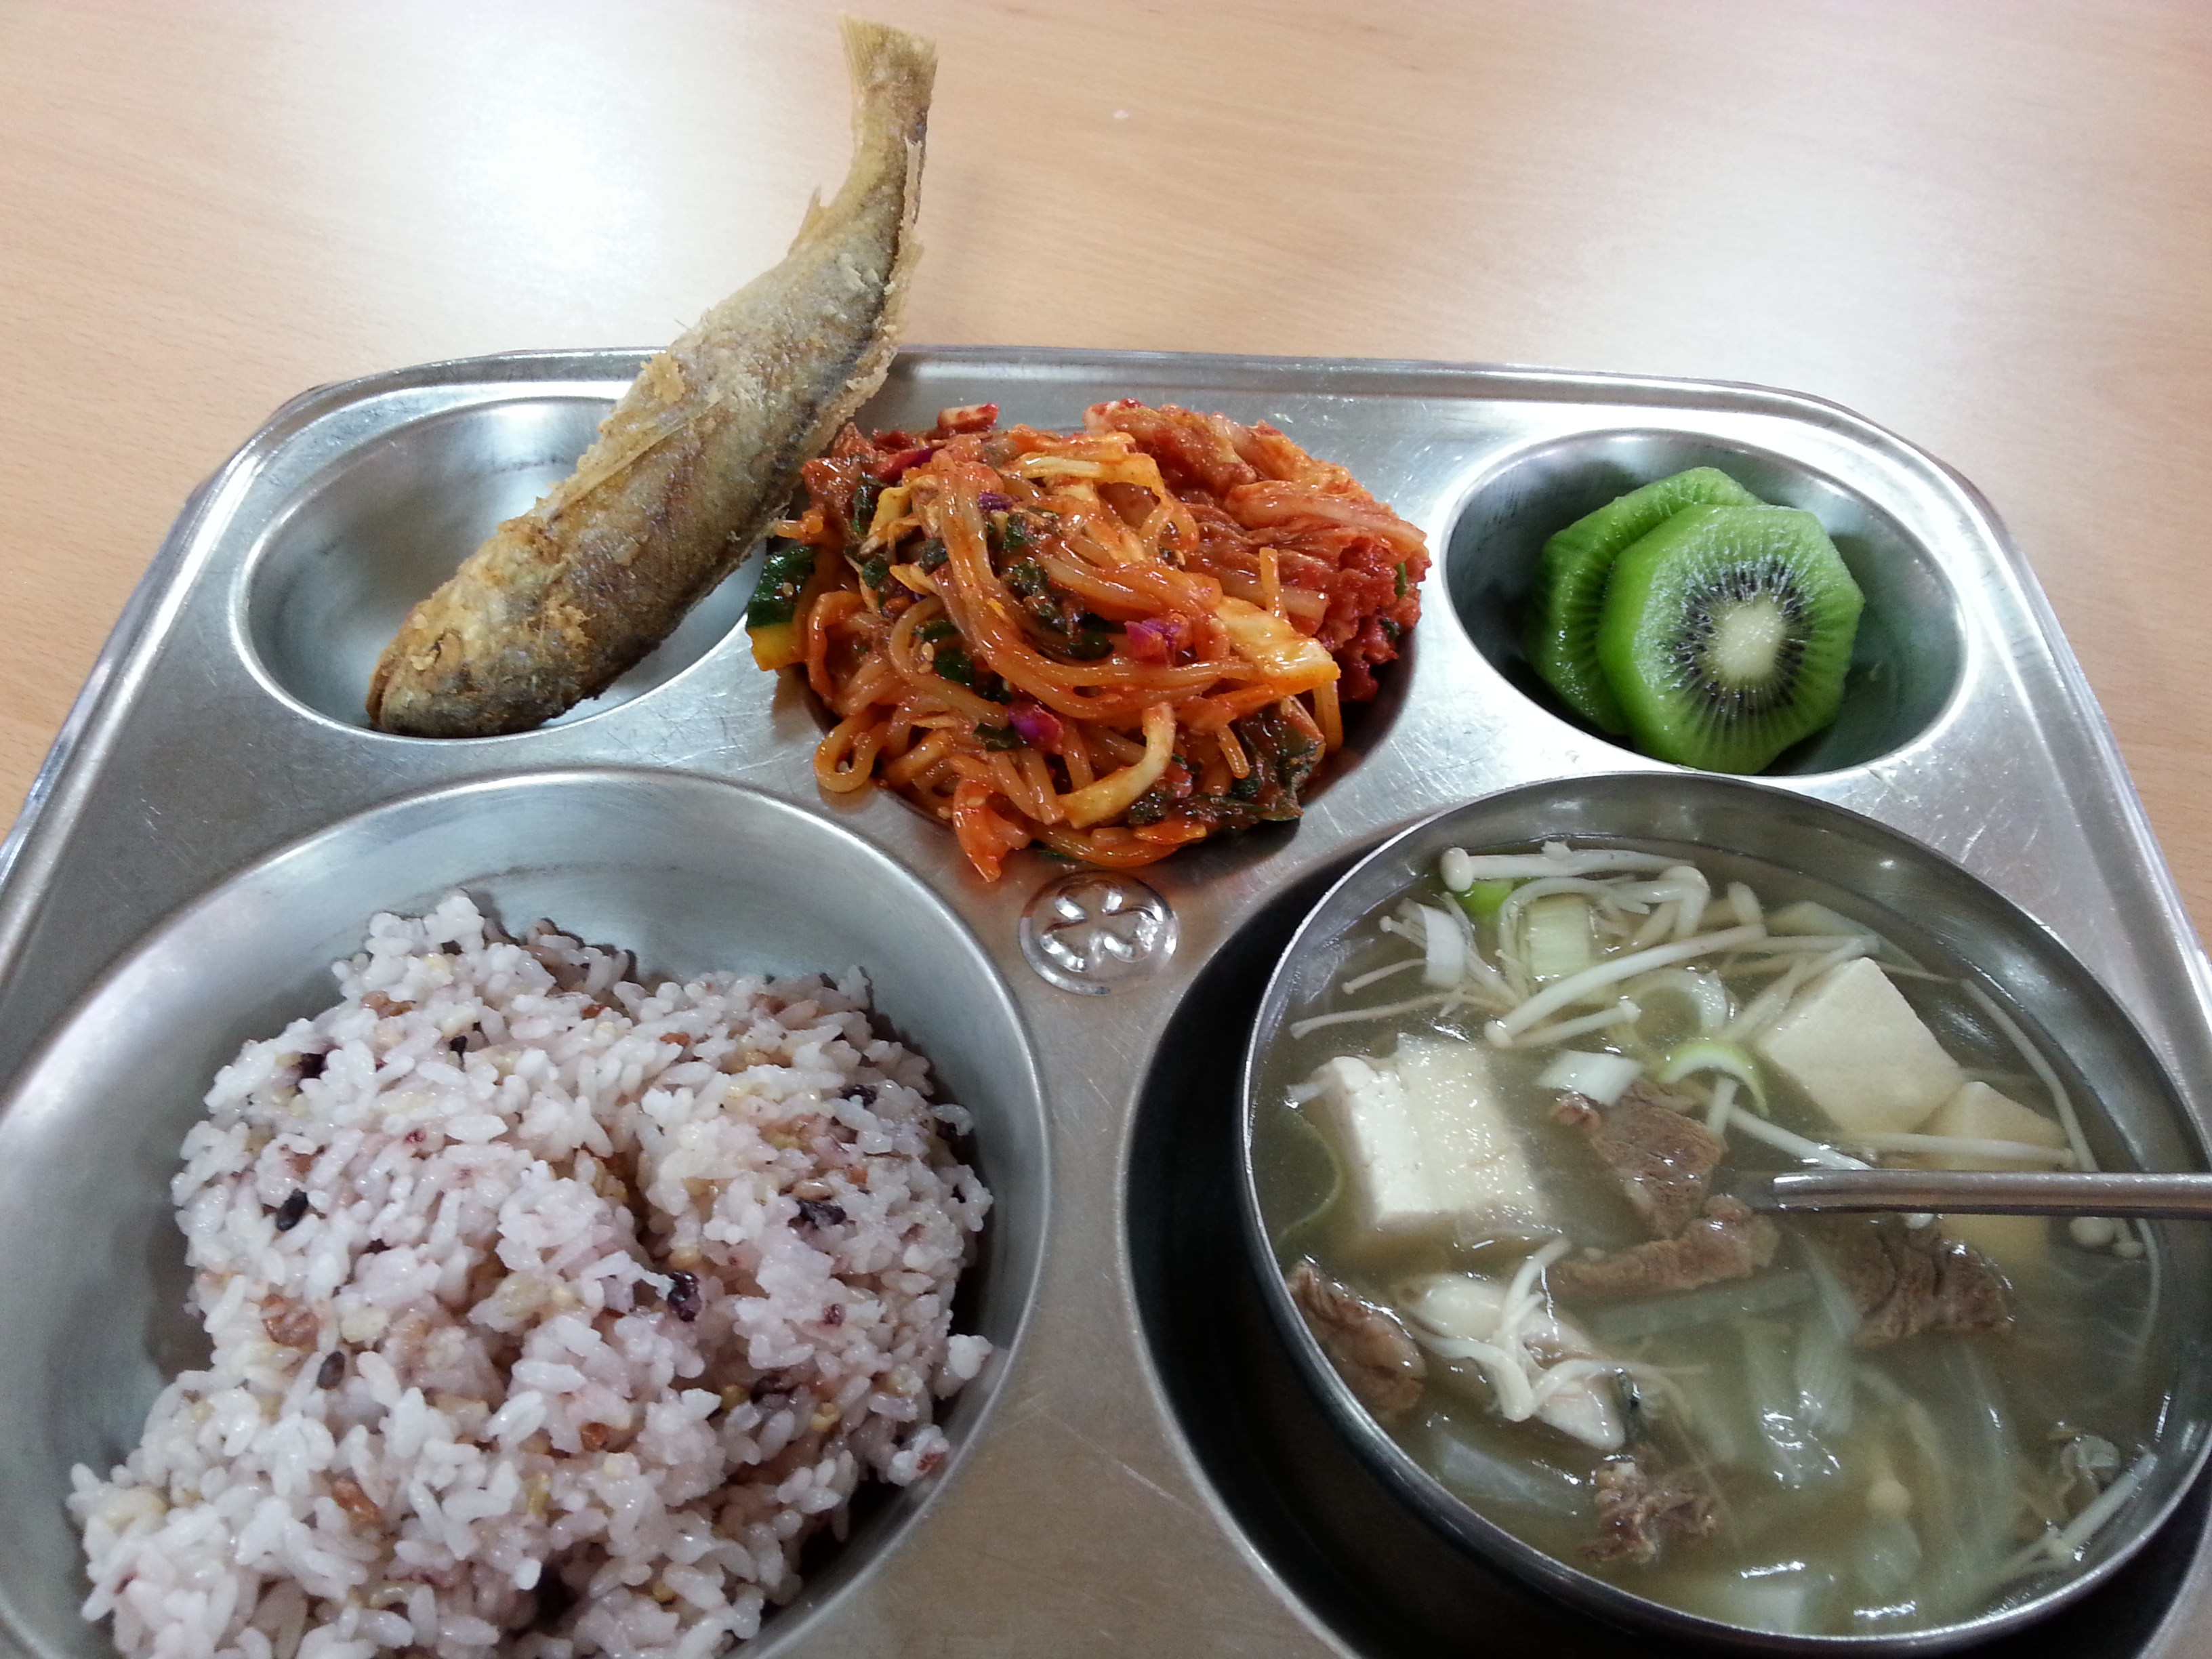 school lunches in south korea the huffington post 2016 03 13 1457843670 8057456 20141205 1212571 jpg